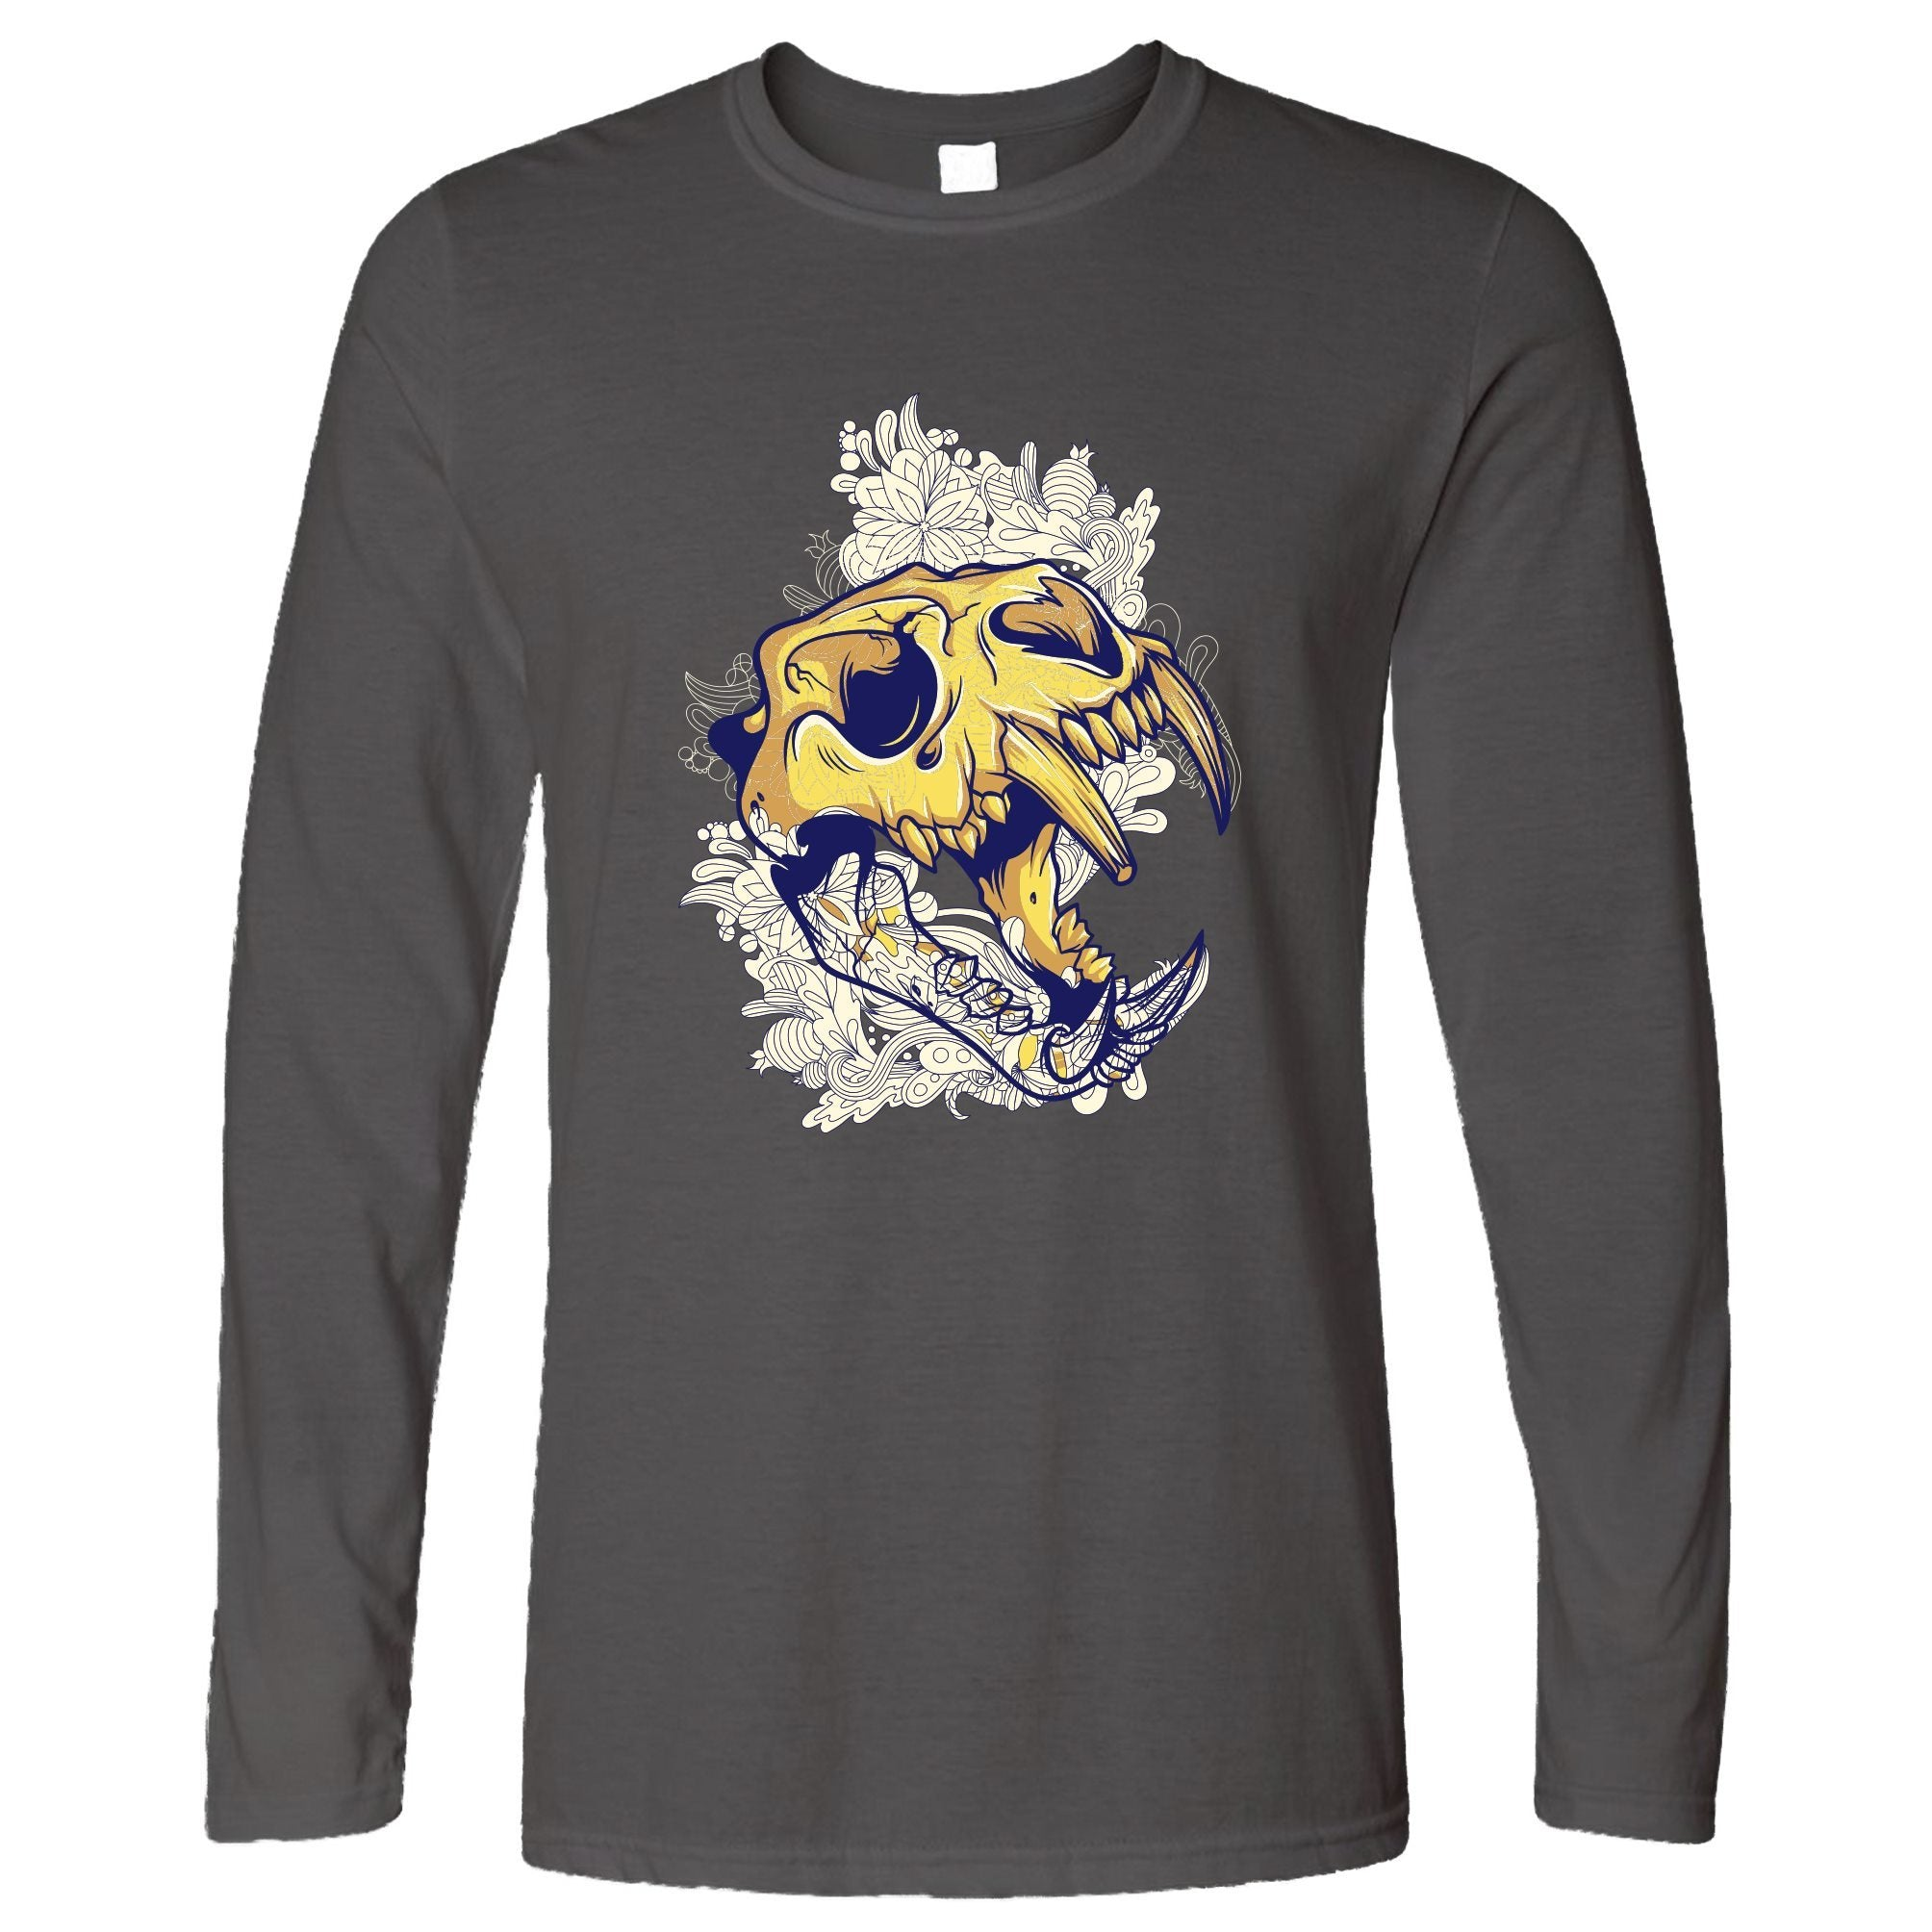 Ice Age Art Long Sleeve Sabertooth Tiger Skull Graphic T-Shirt